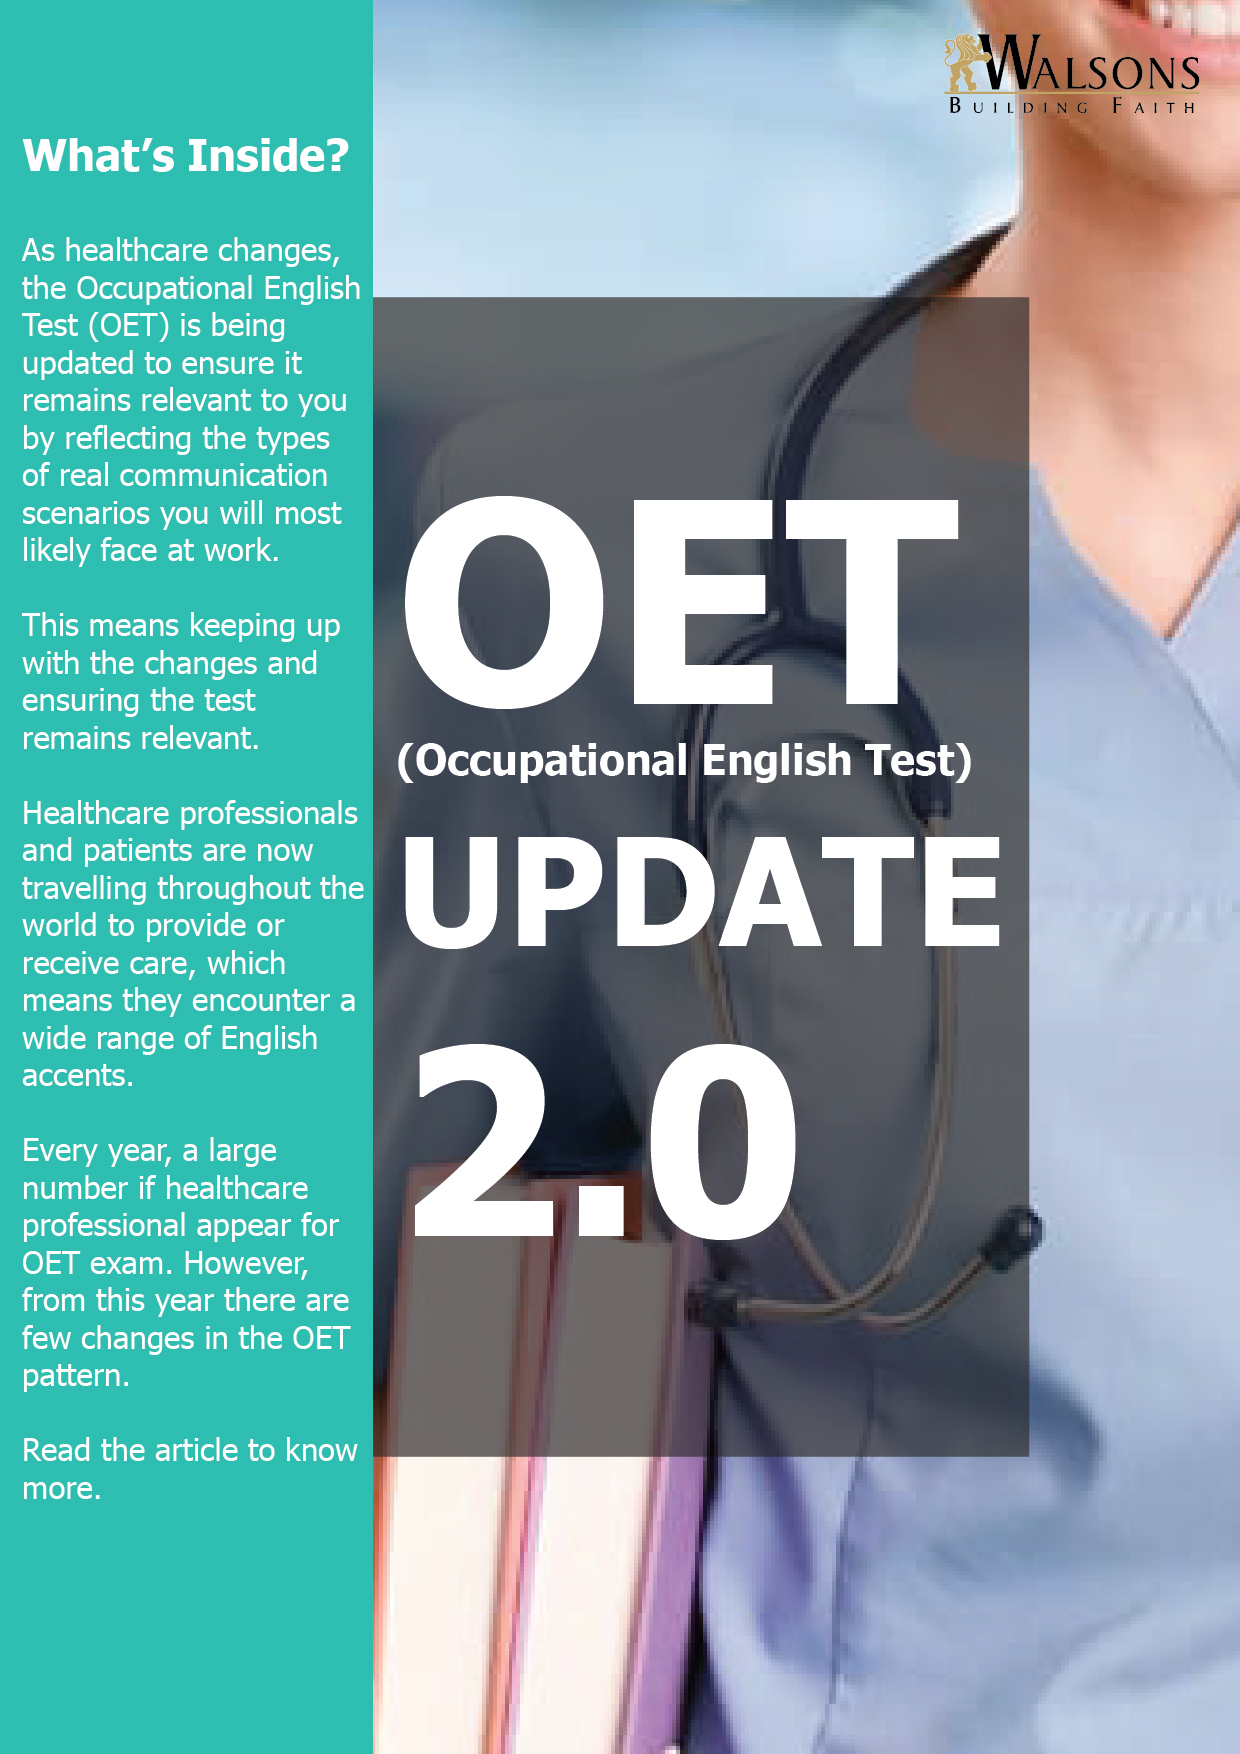 OET(Occupational English Test) Update 2 0 – Walsons Healthcare